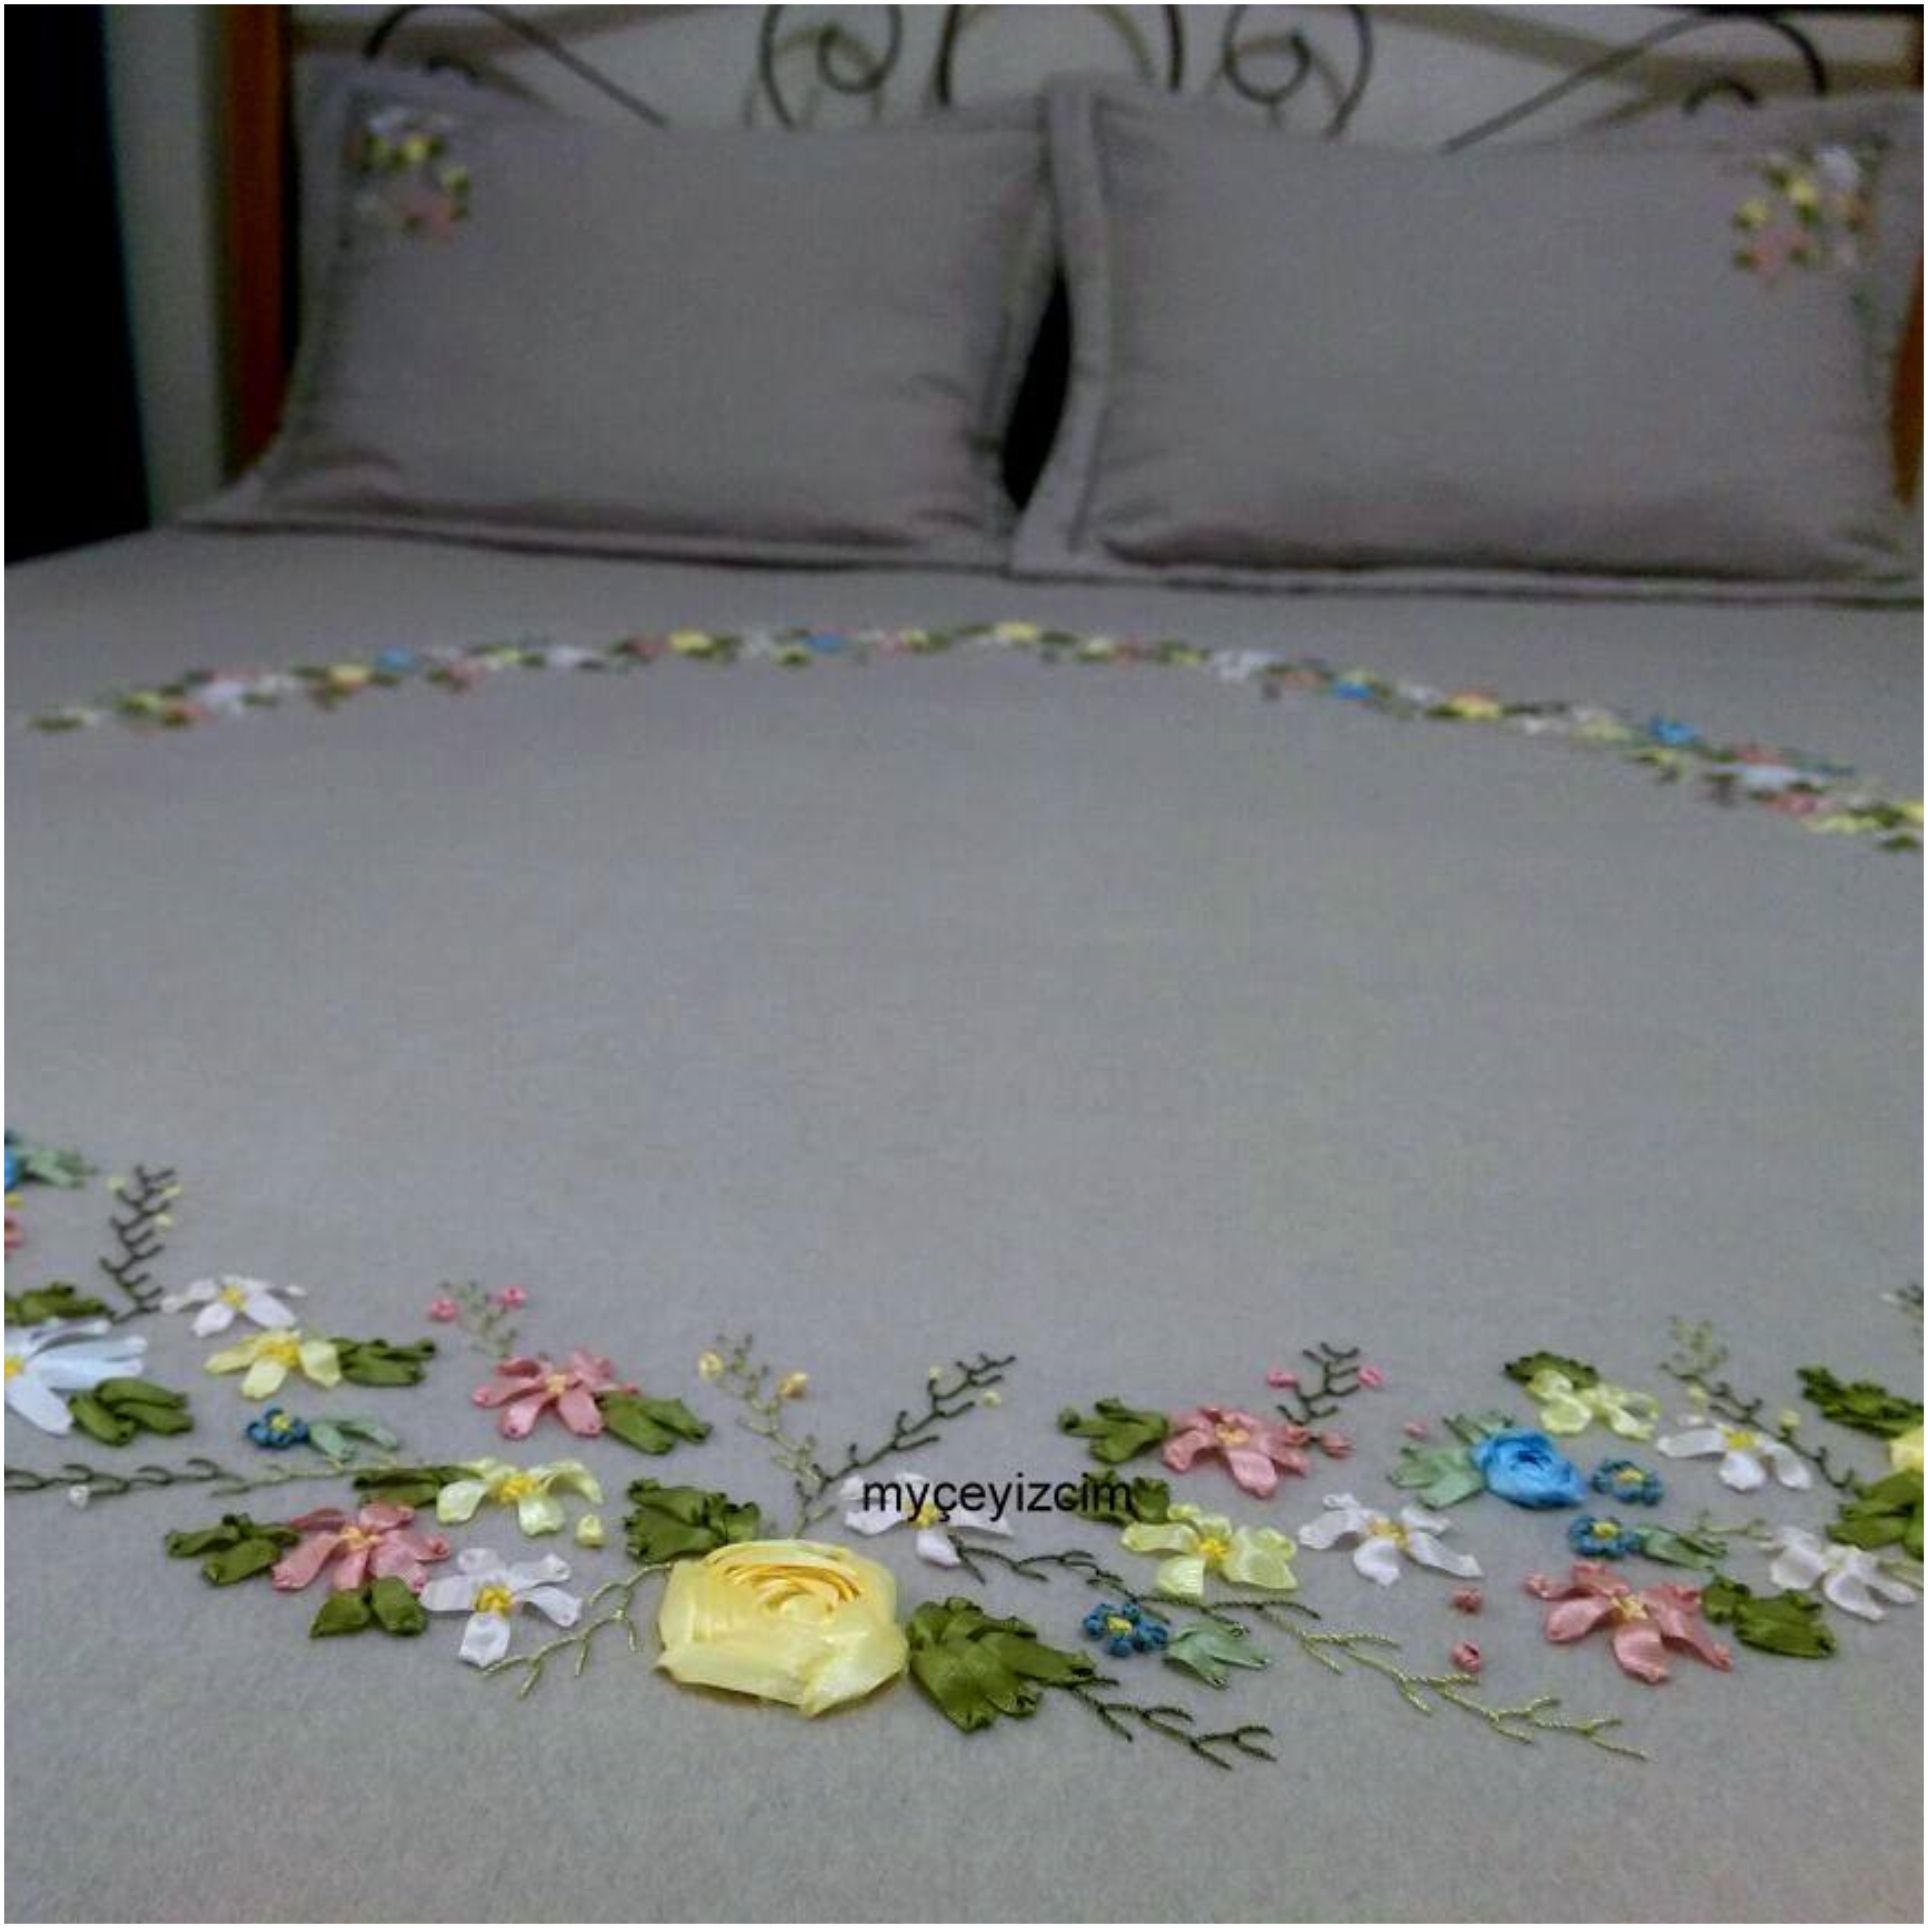 Pin By Myceyizcim On Kurdele Nak Ribbon Embroidery Pinterest